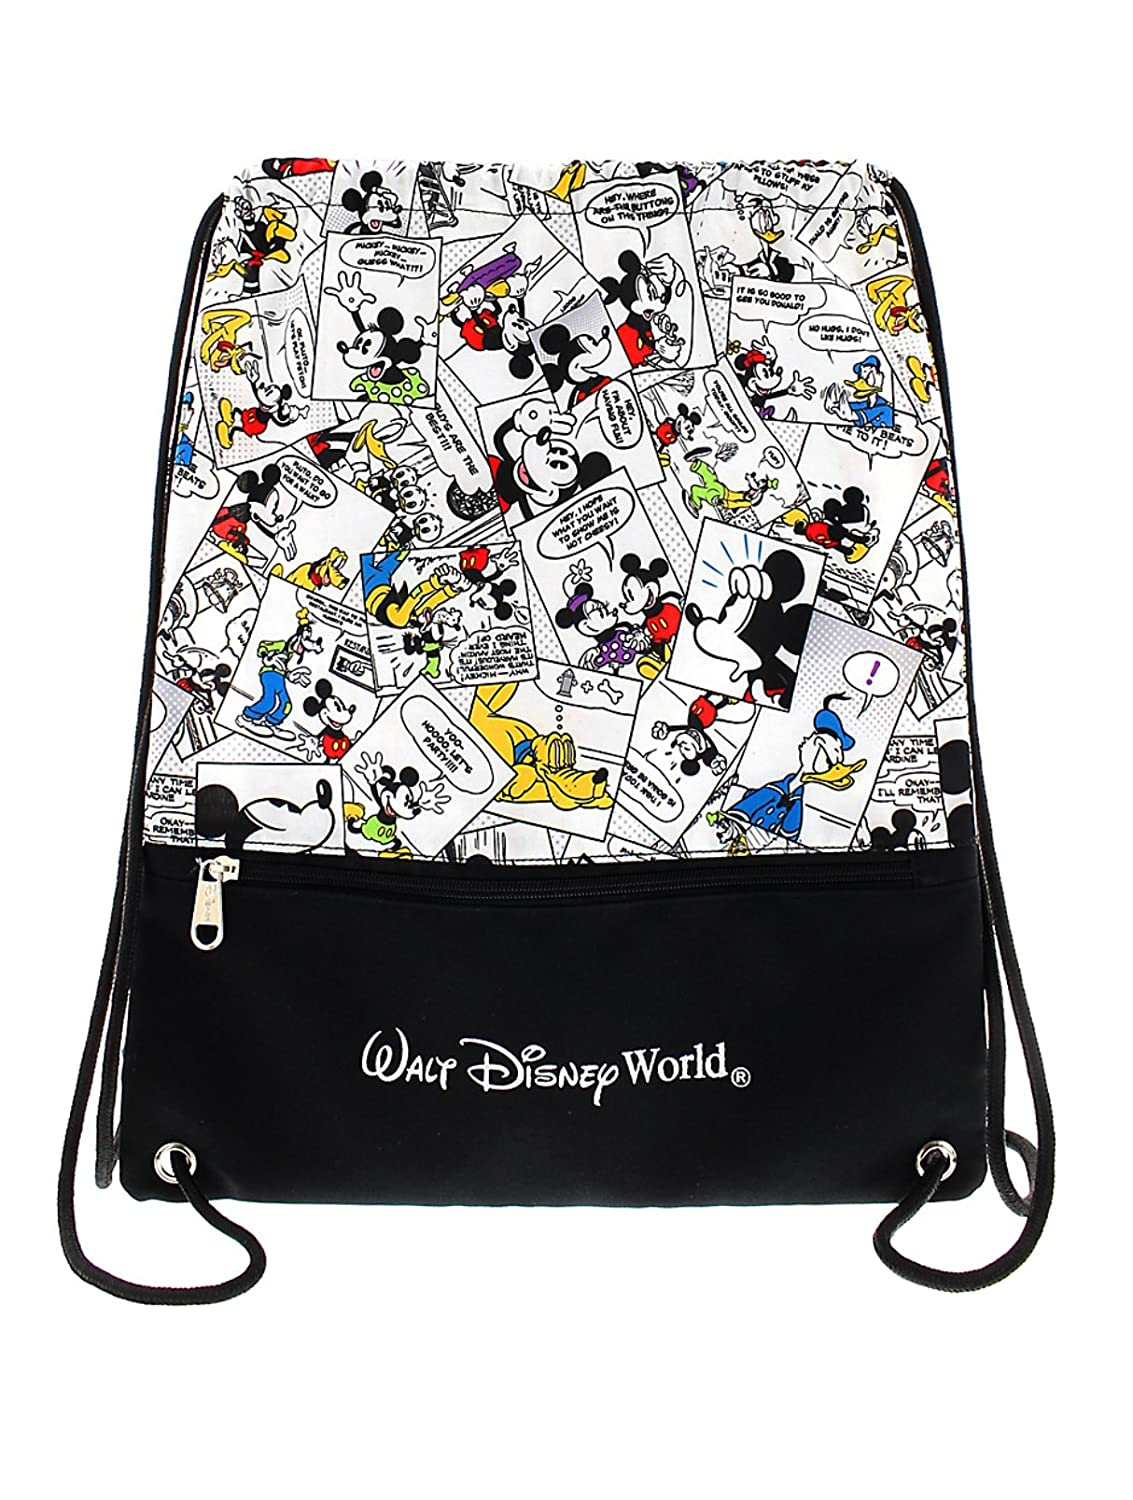 31c4ef5a7c3 Amazon.com  Walt Disney World Mickey Mouse and Friends Comic Cinch Sack Drawstring  Bag  Shoes